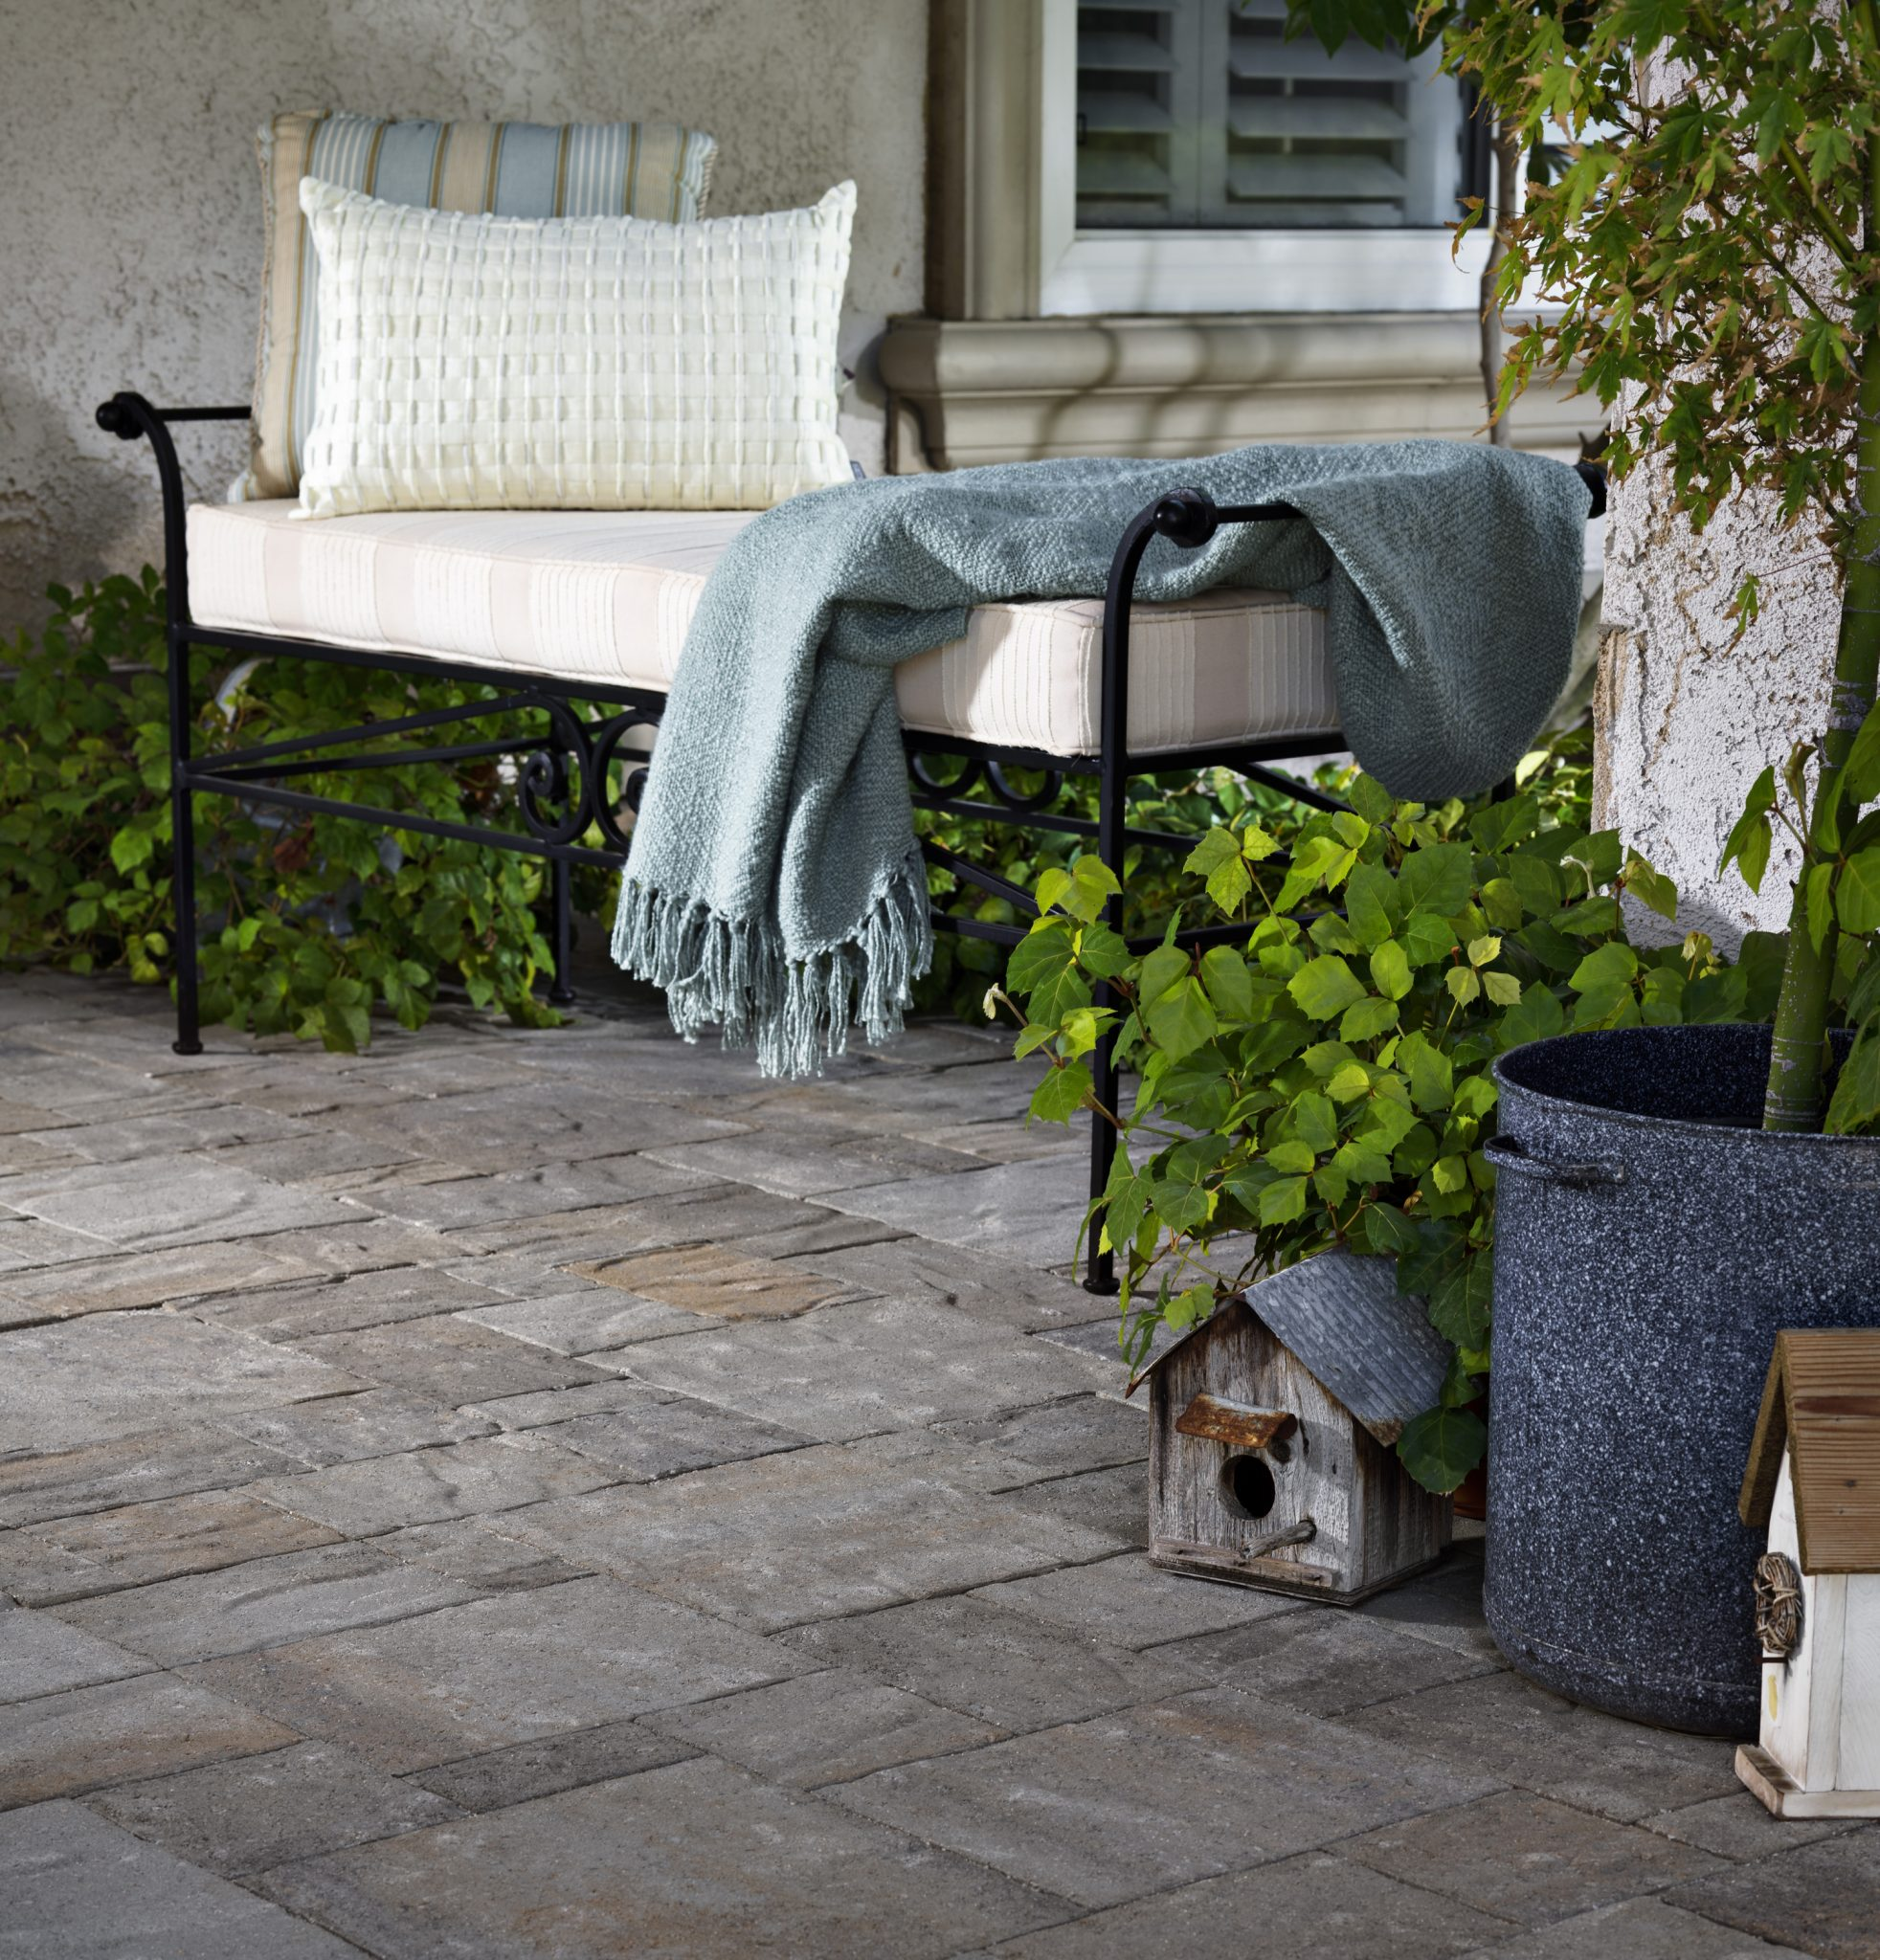 High Quality Outdoor Slate Tile: Patio Flooring Options + Expert Tips | INSTALL IT DIRECT